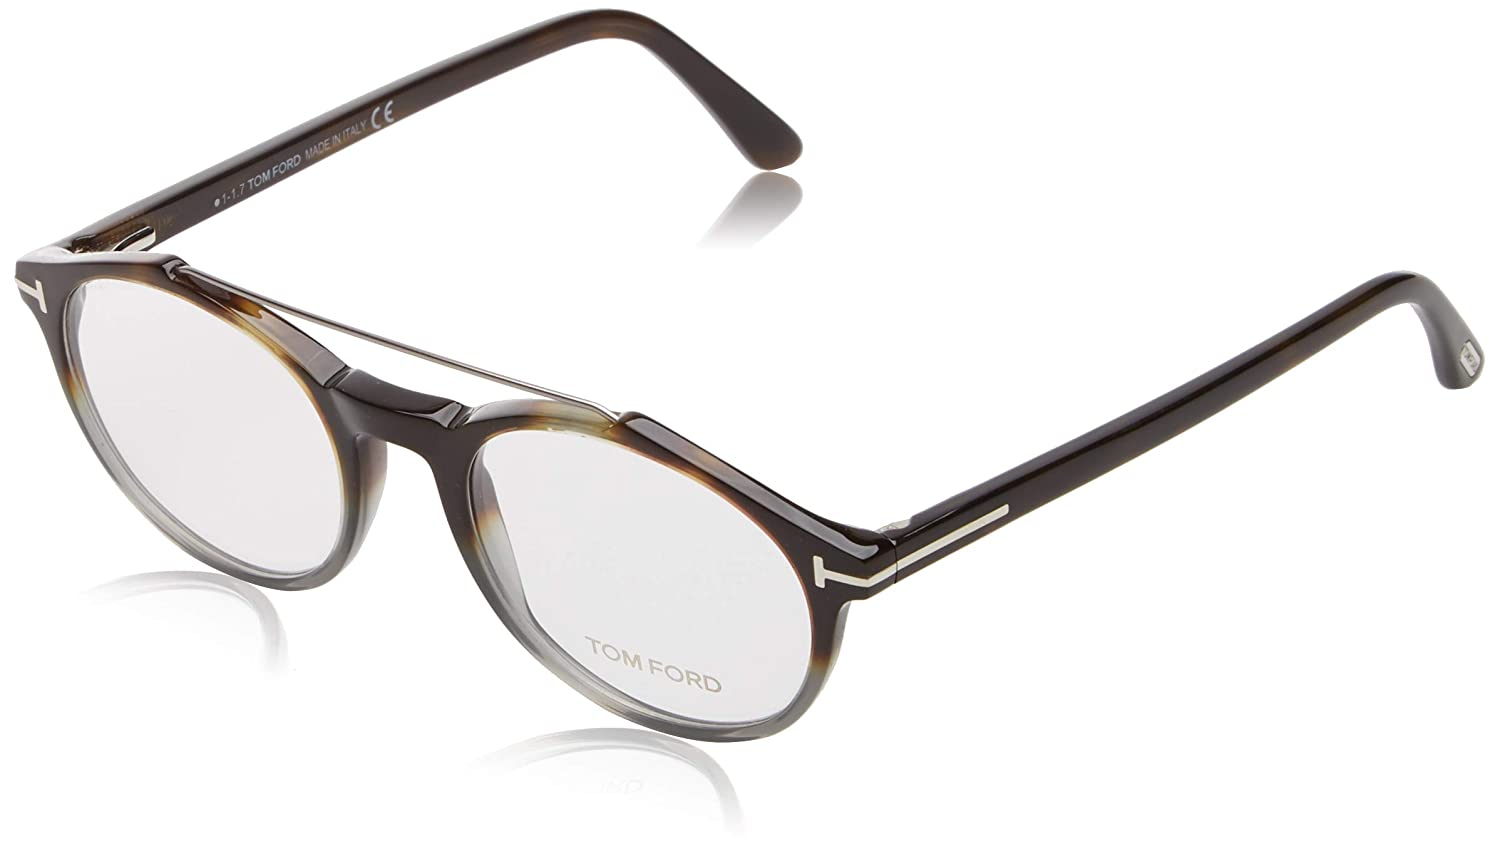 9dad77d9991 Eyeglasses Tom Ford FT 5455 055 coloured havana at Amazon Men s Clothing  store